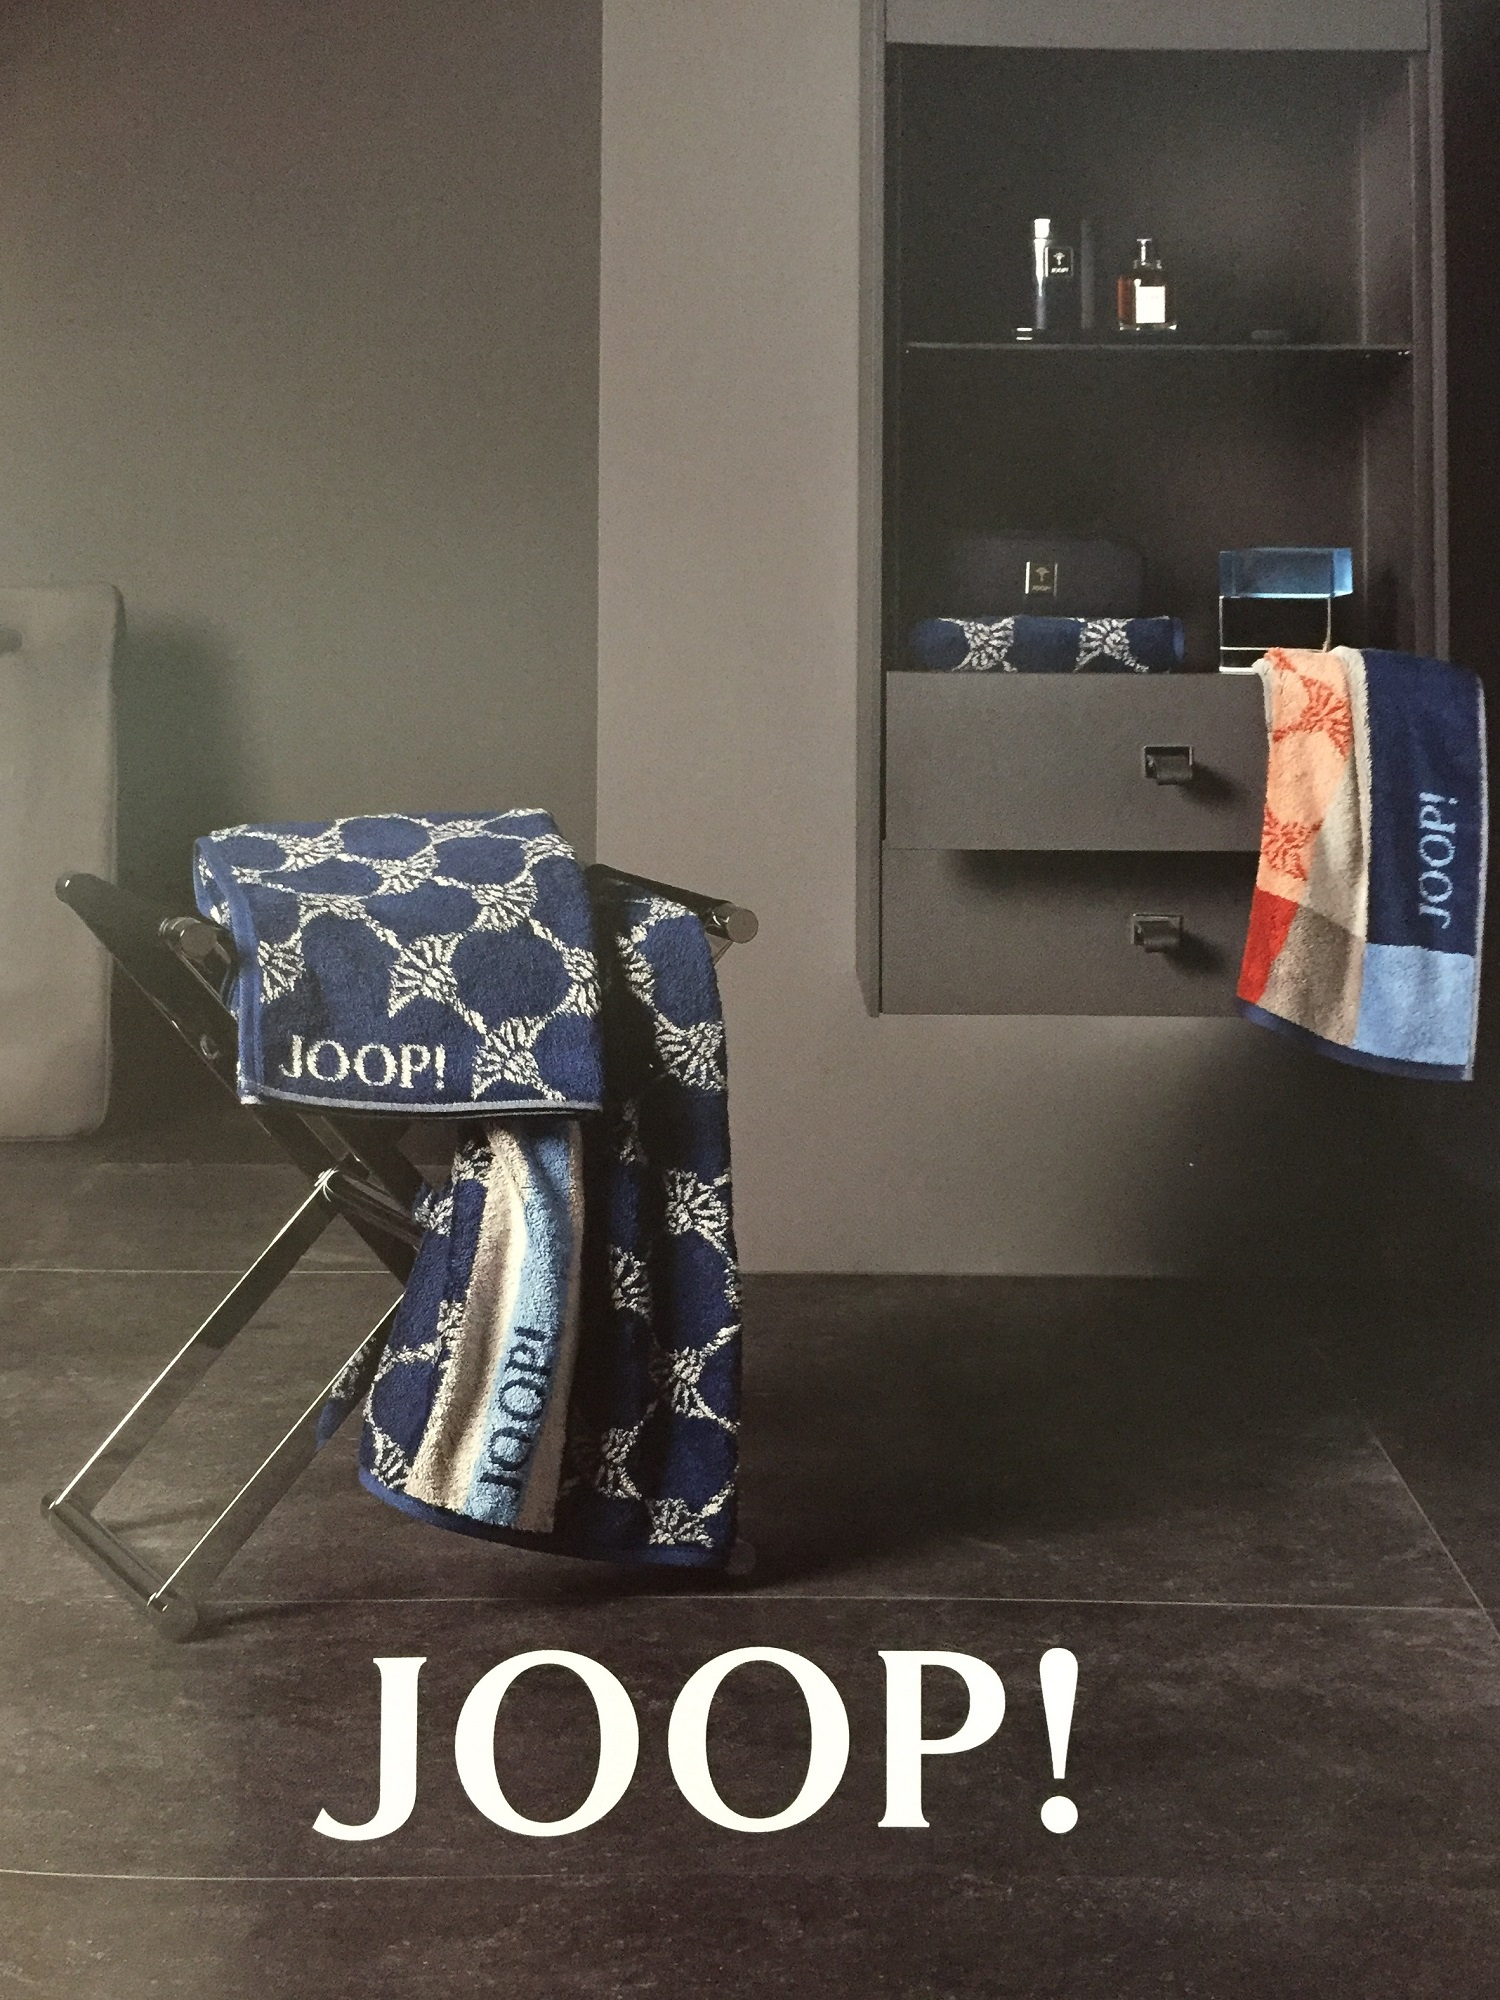 JOOP! Frottierkollektion Statement 1671 Checked Neuheiten Herbst/Winter 2019/20